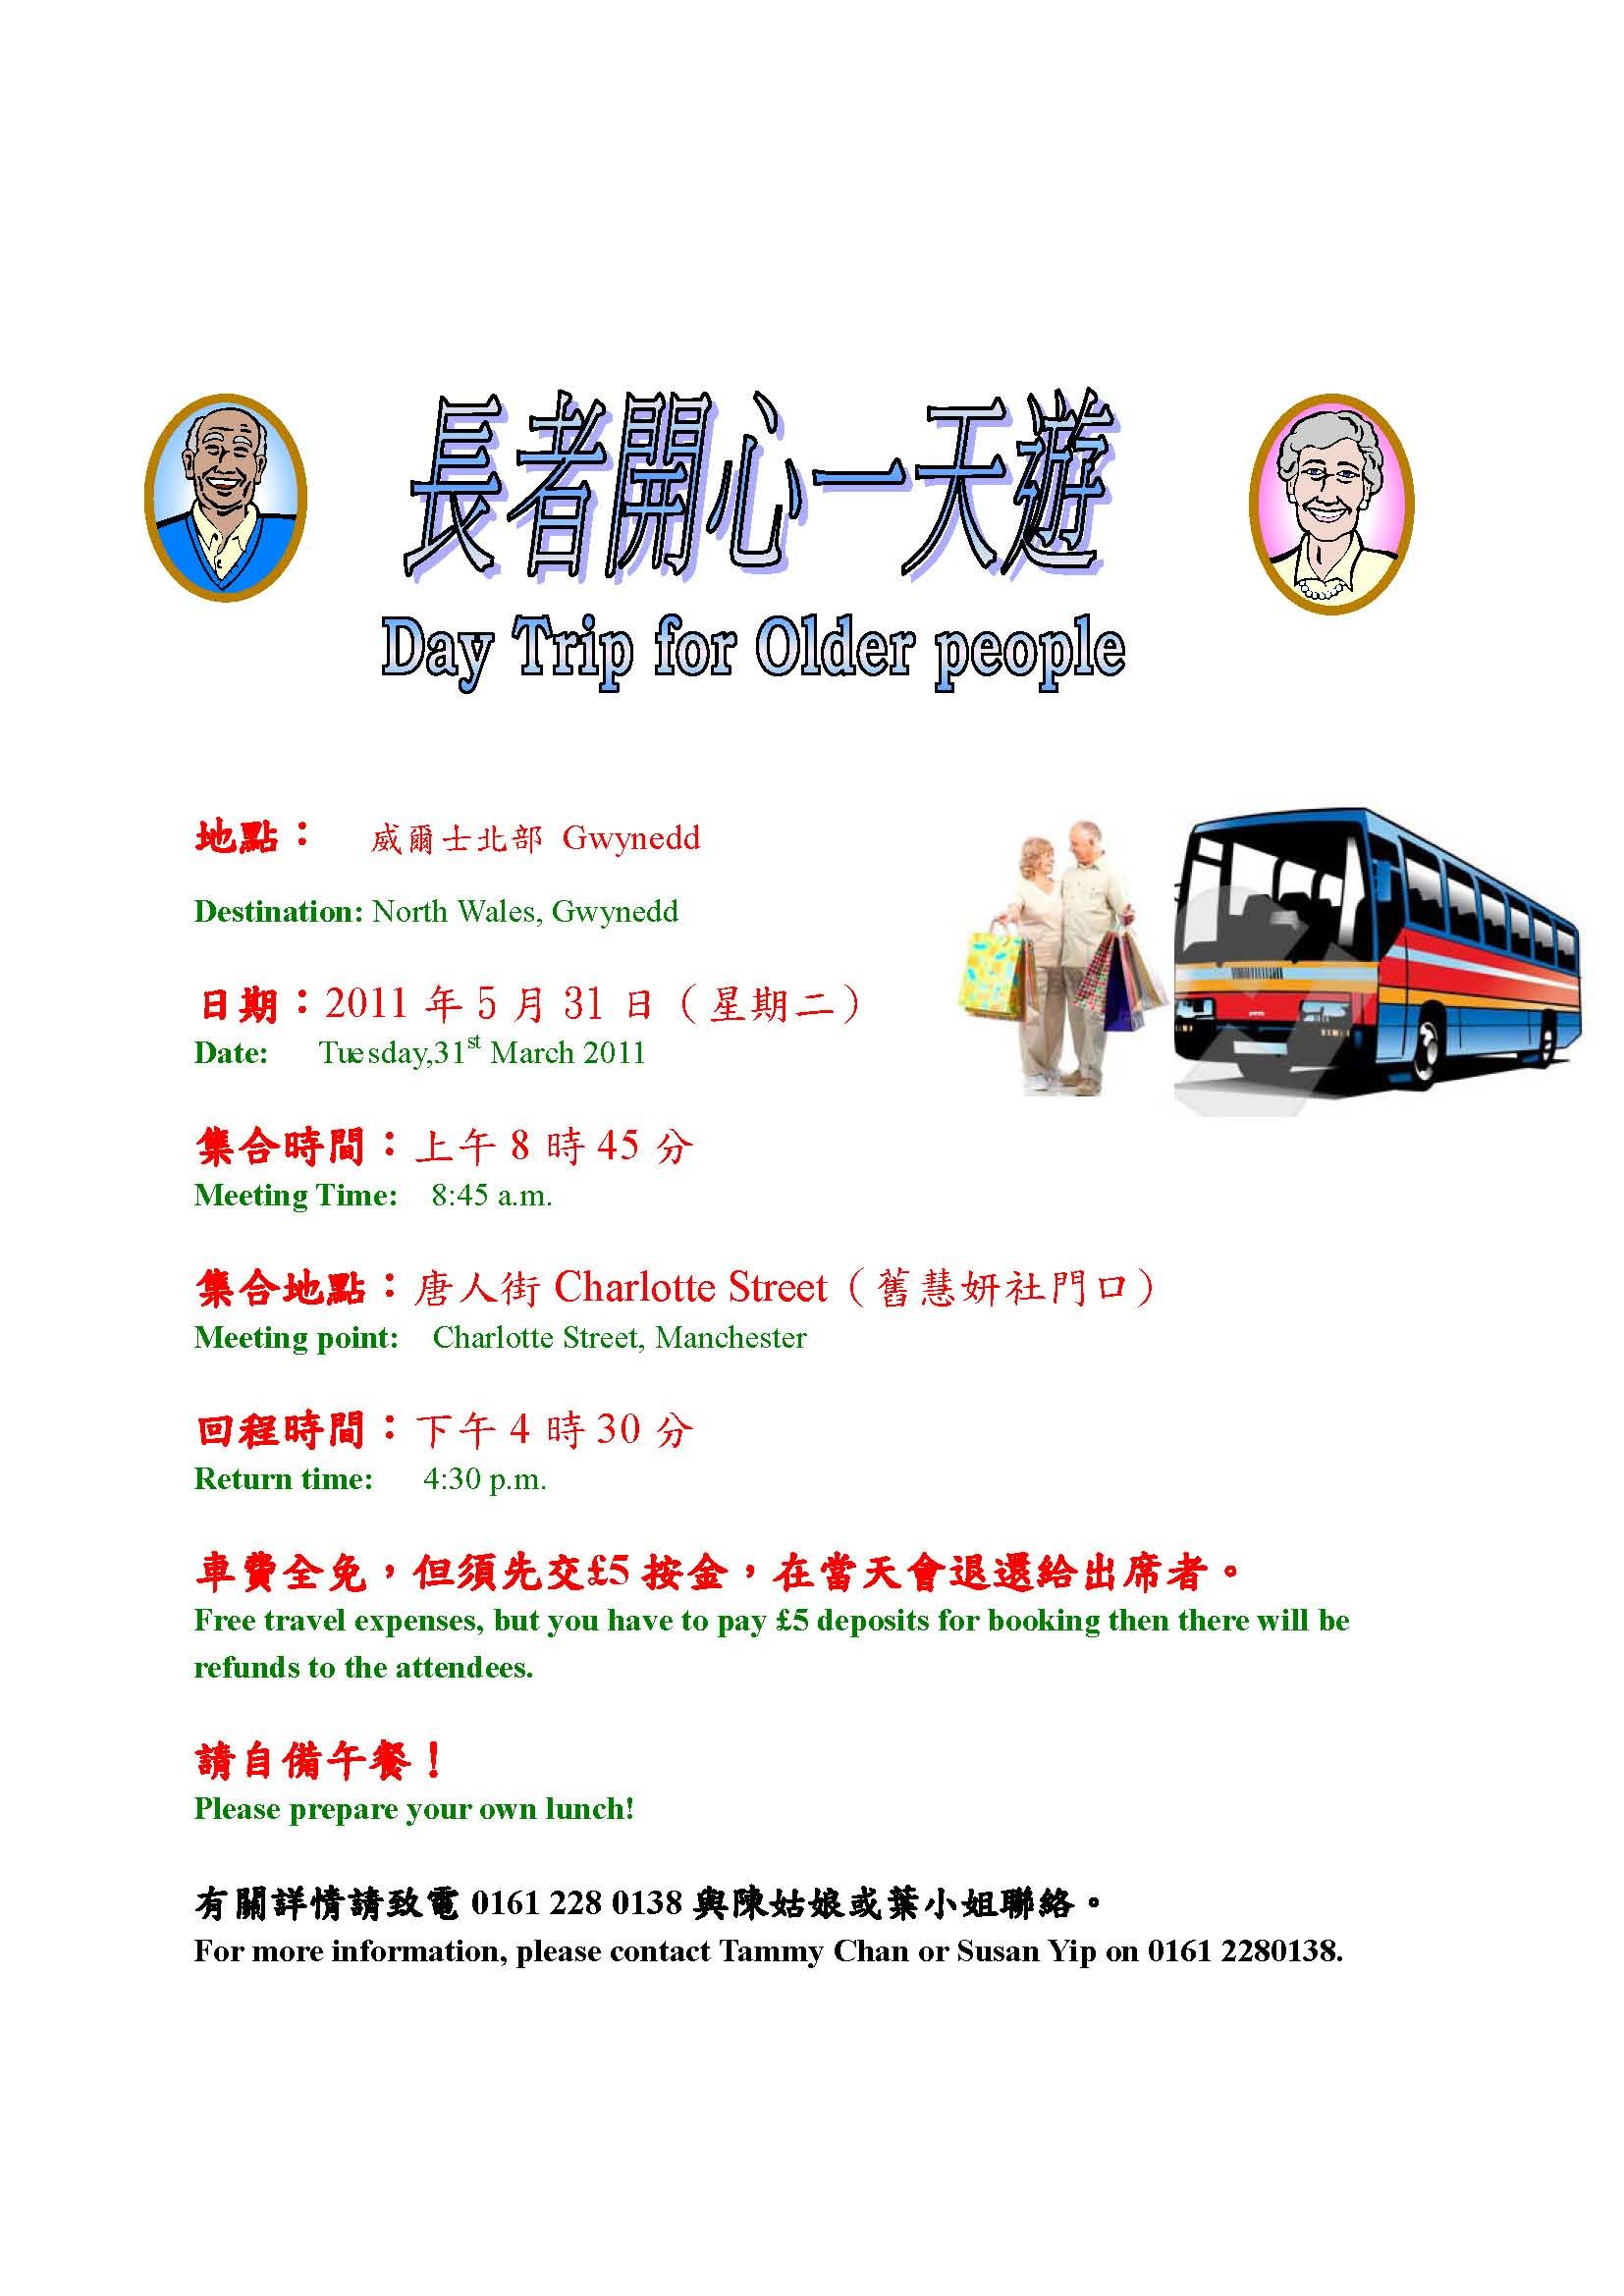 Day Trip for Older People